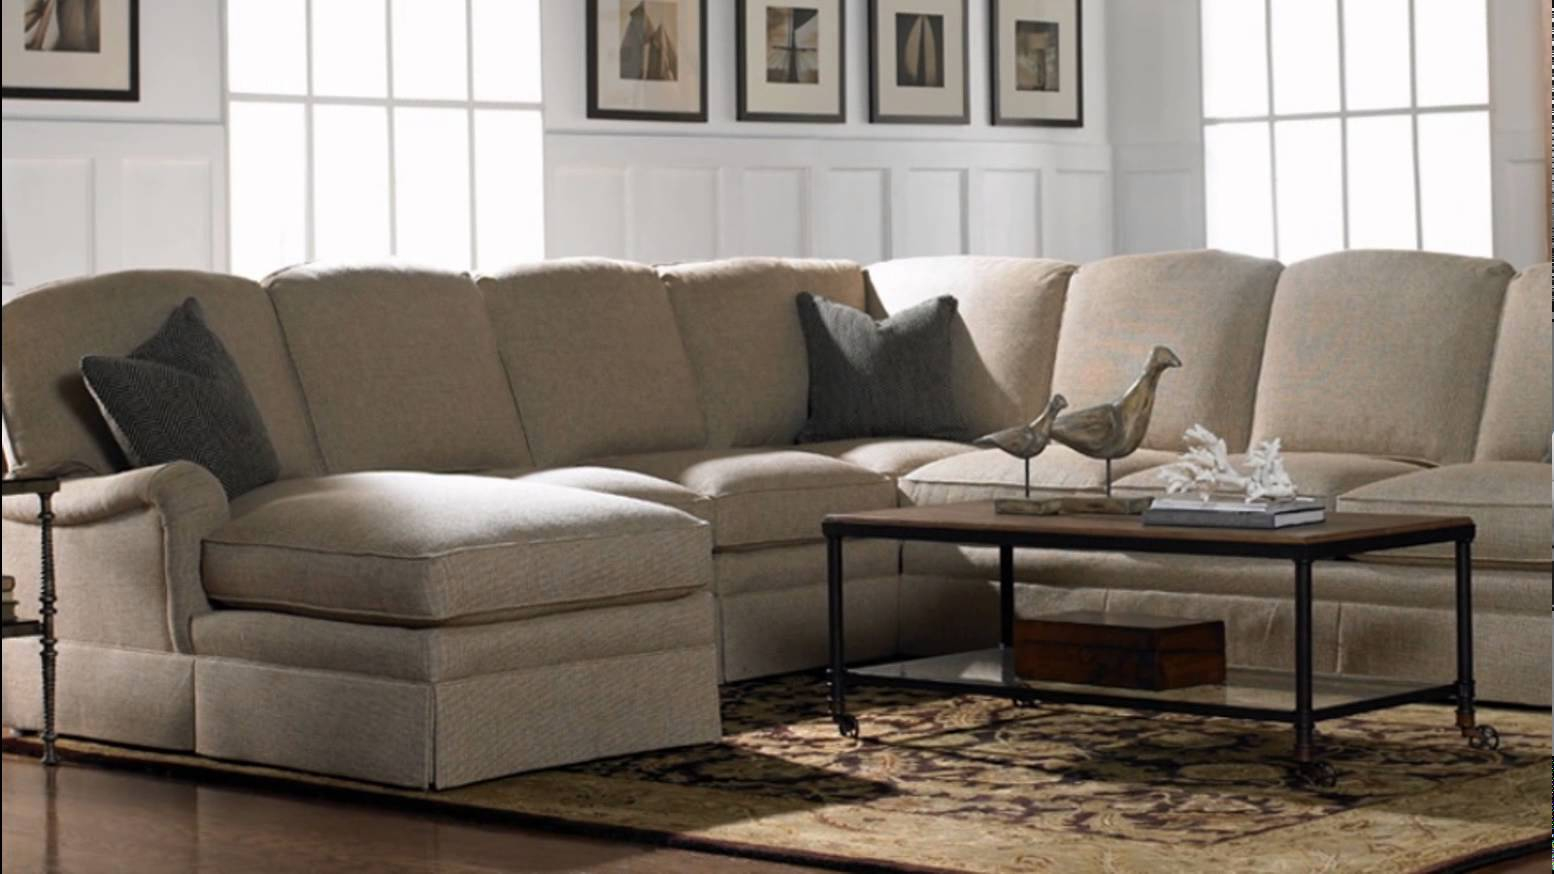 Home furniture stores at 1555 simi town center way simi valley ca urban home solutioingenieria Image collections